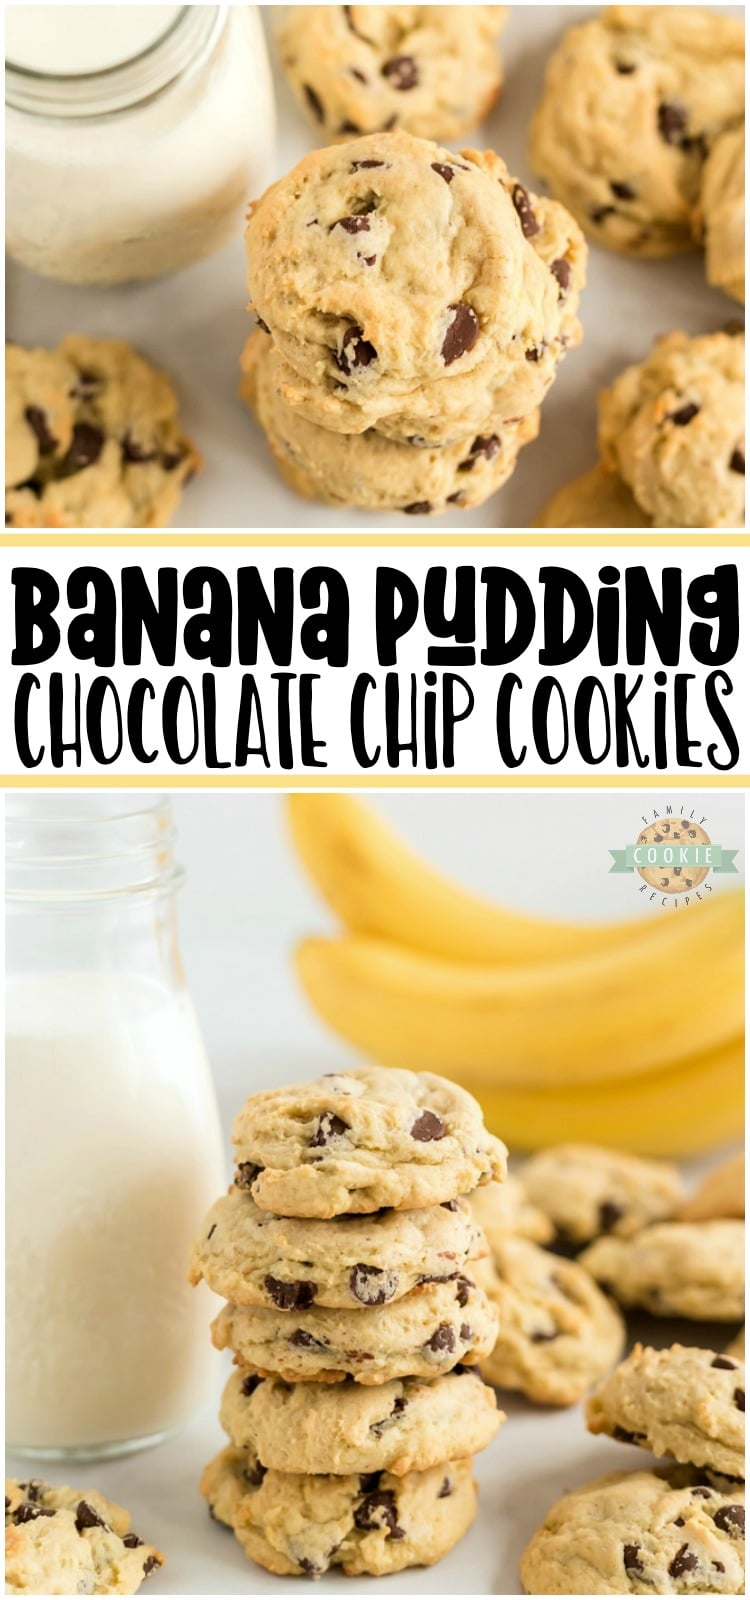 Banana Chocolate Chip Cookies are made with fresh bananas and chocolate chips folded into a lovely vanilla pudding cookie dough. A soft chocolate chip cookie recipe with lovely bright, fresh flavor from fresh bananas and chocolate. #cookies #banana #chocolatechip #baking #dessert #recipe from FAMILY COOKIE RECIPES via @buttergirls